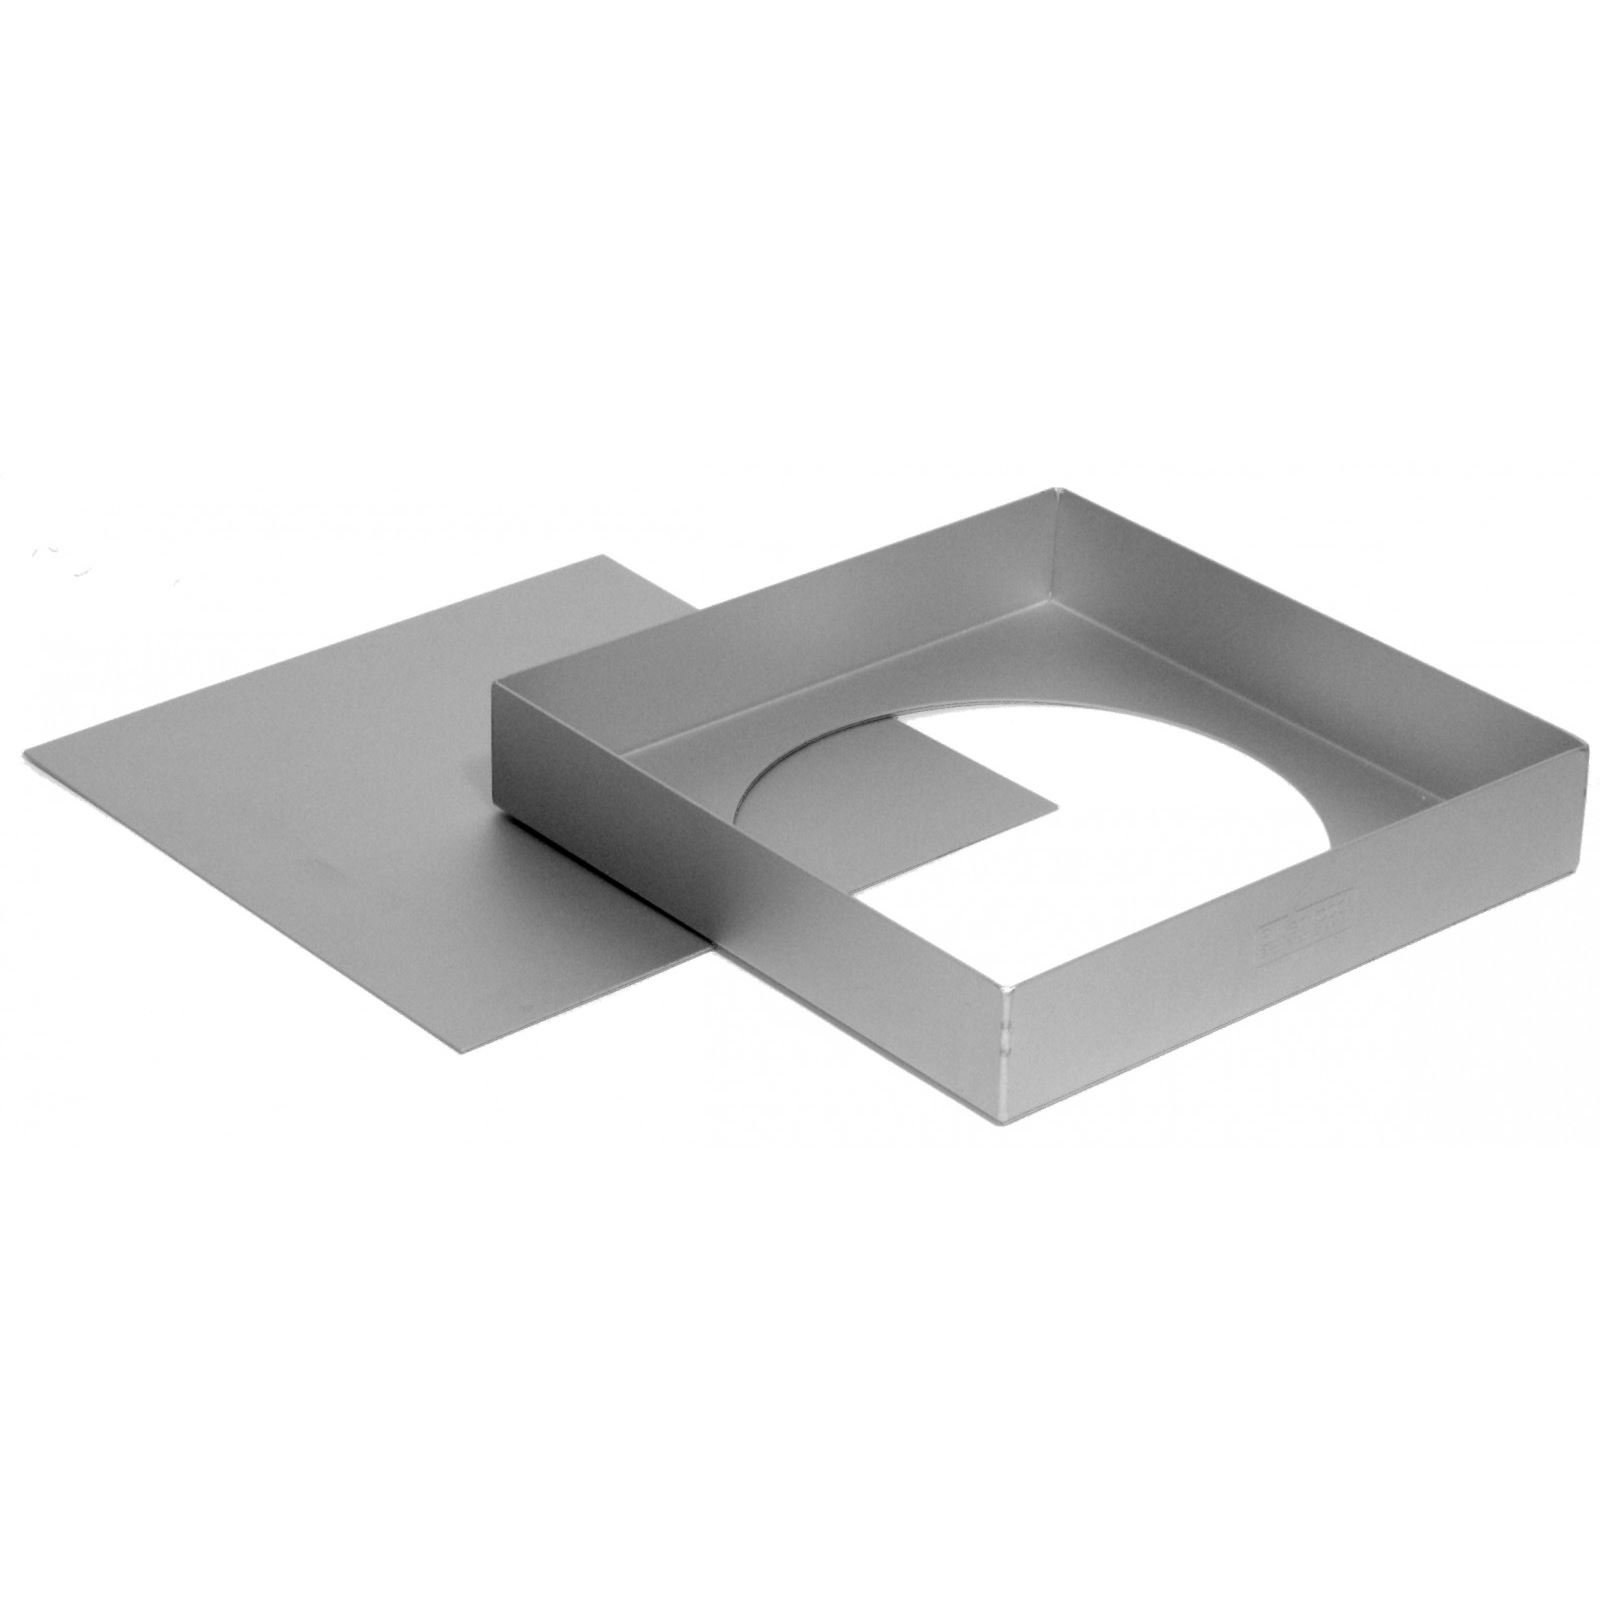 Silverwood Square Sandwich Pan - Loose Based 9'' x 1½'' (Pack of 4)